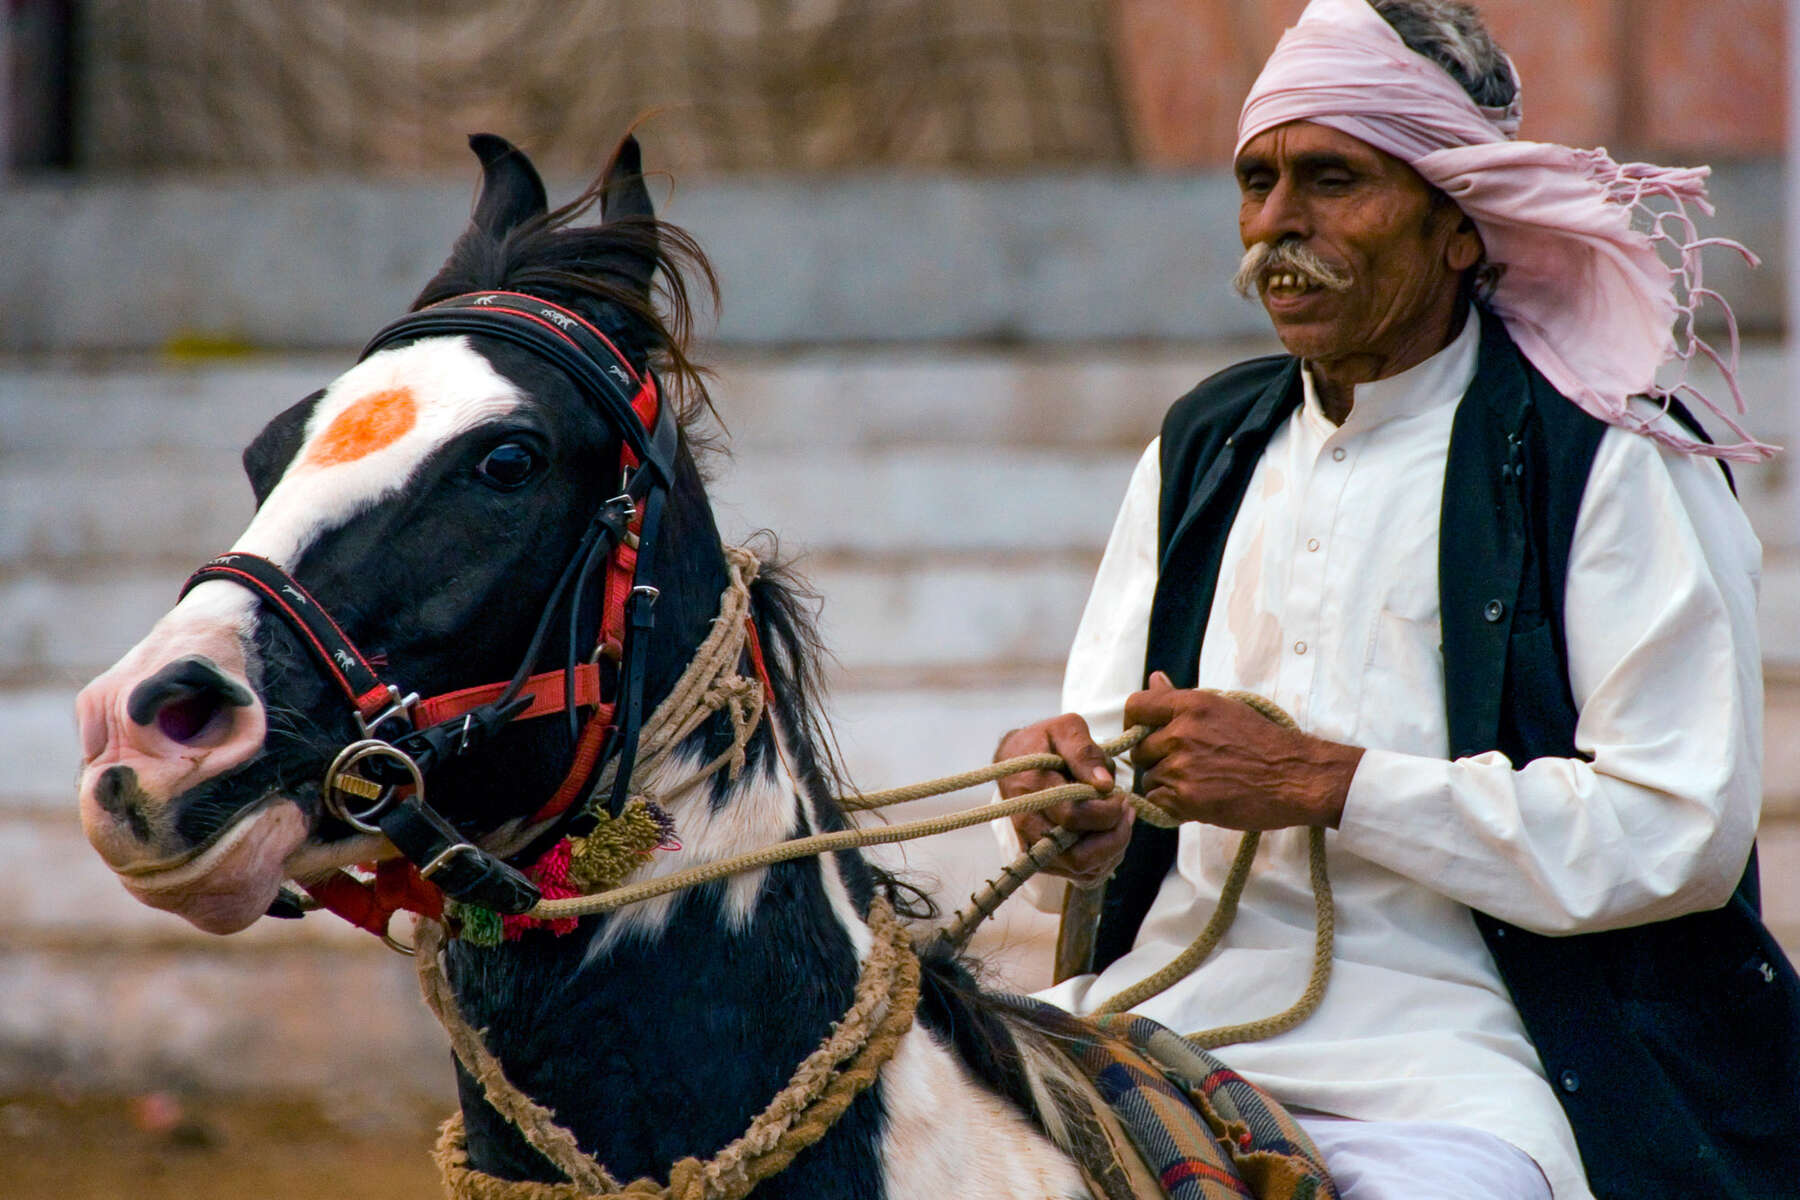 Rider and Marwari horse, Rajasthan